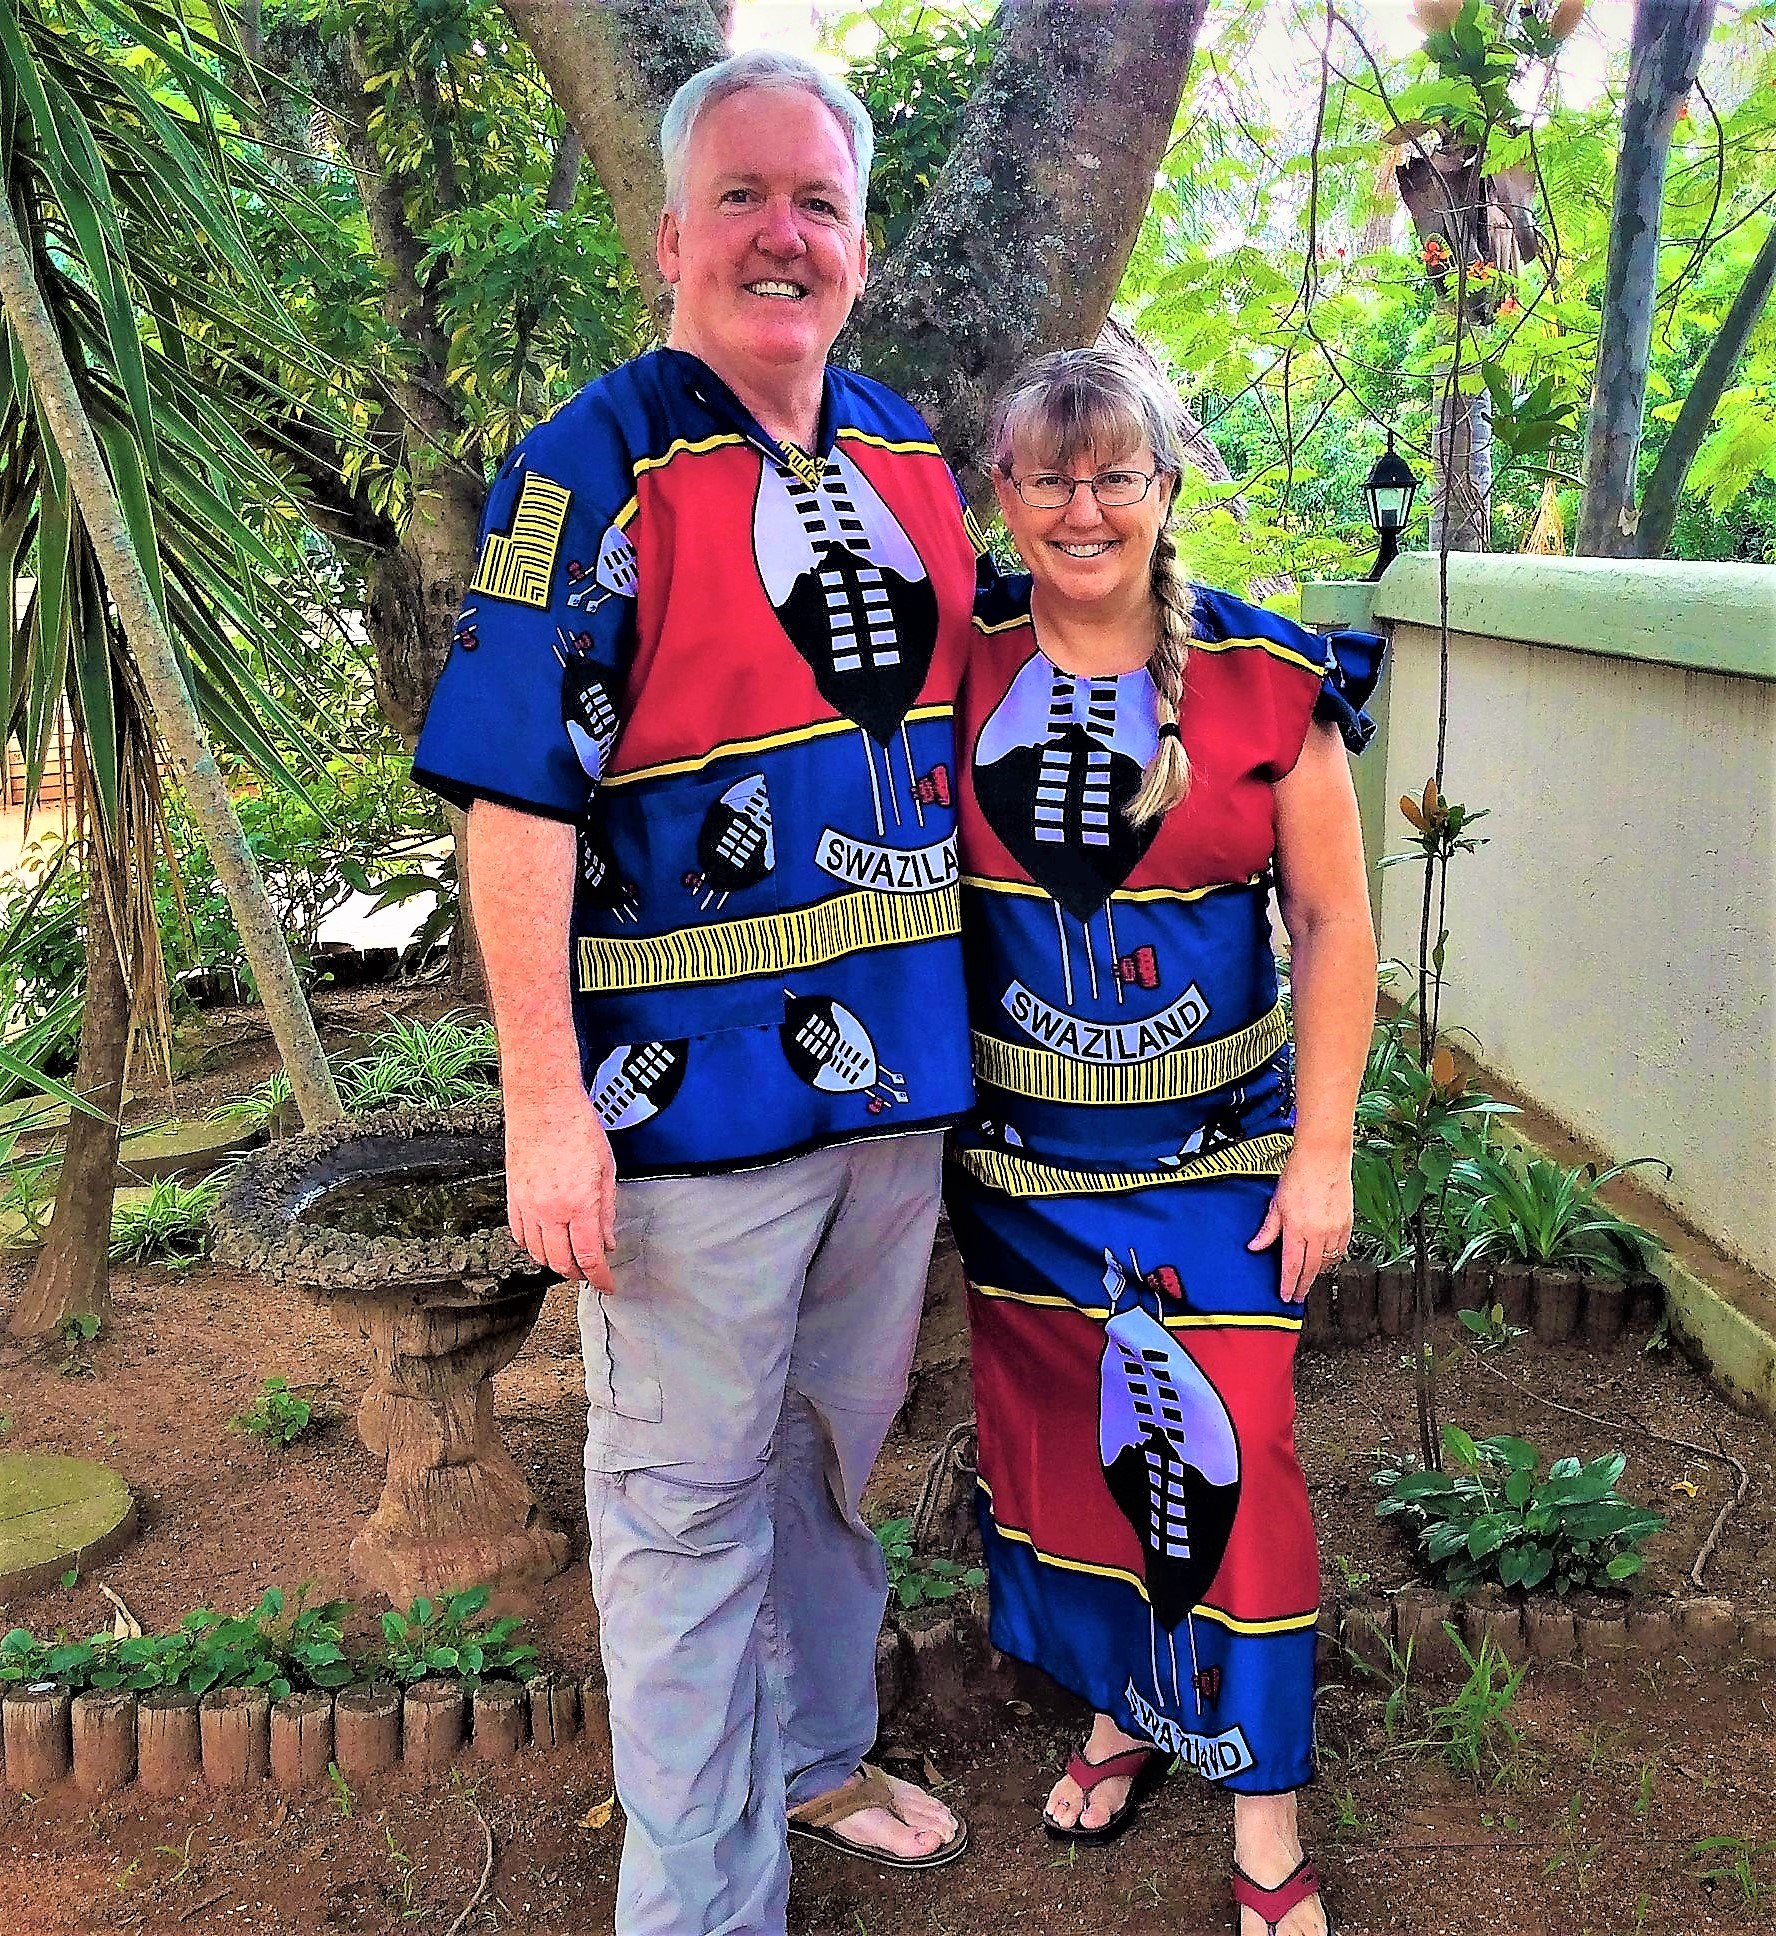 kay & john in swazi sec. 19 gear